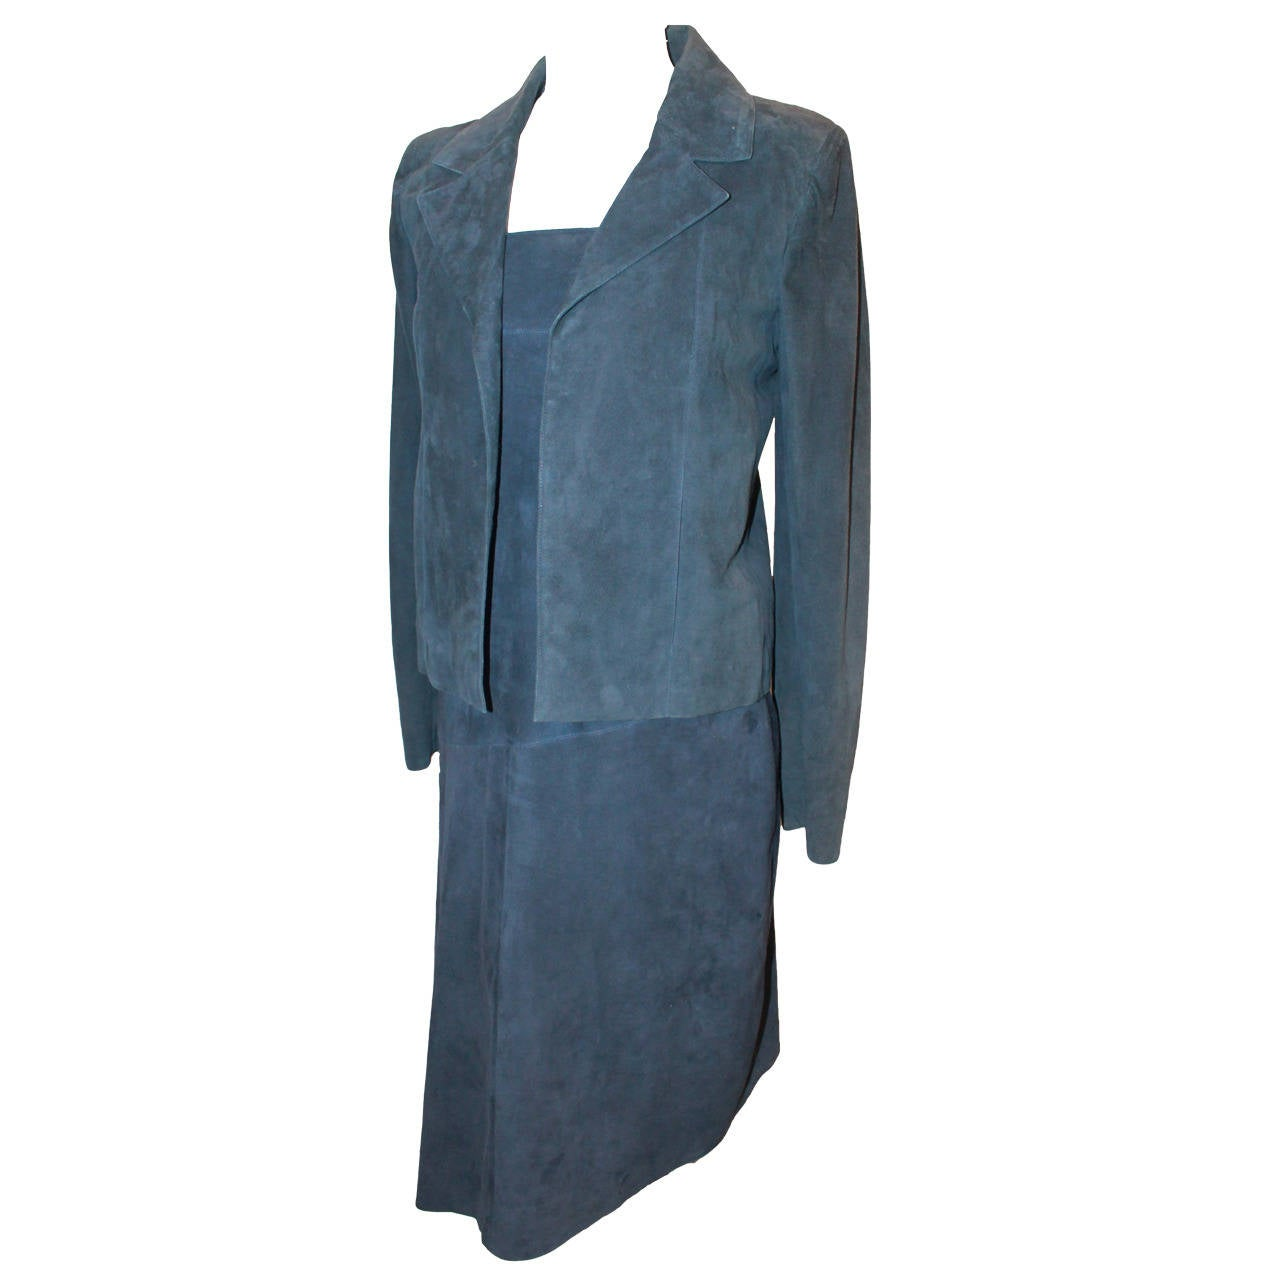 2002 Chanel Navy Suede Two Piece Dress and Jacket - 38